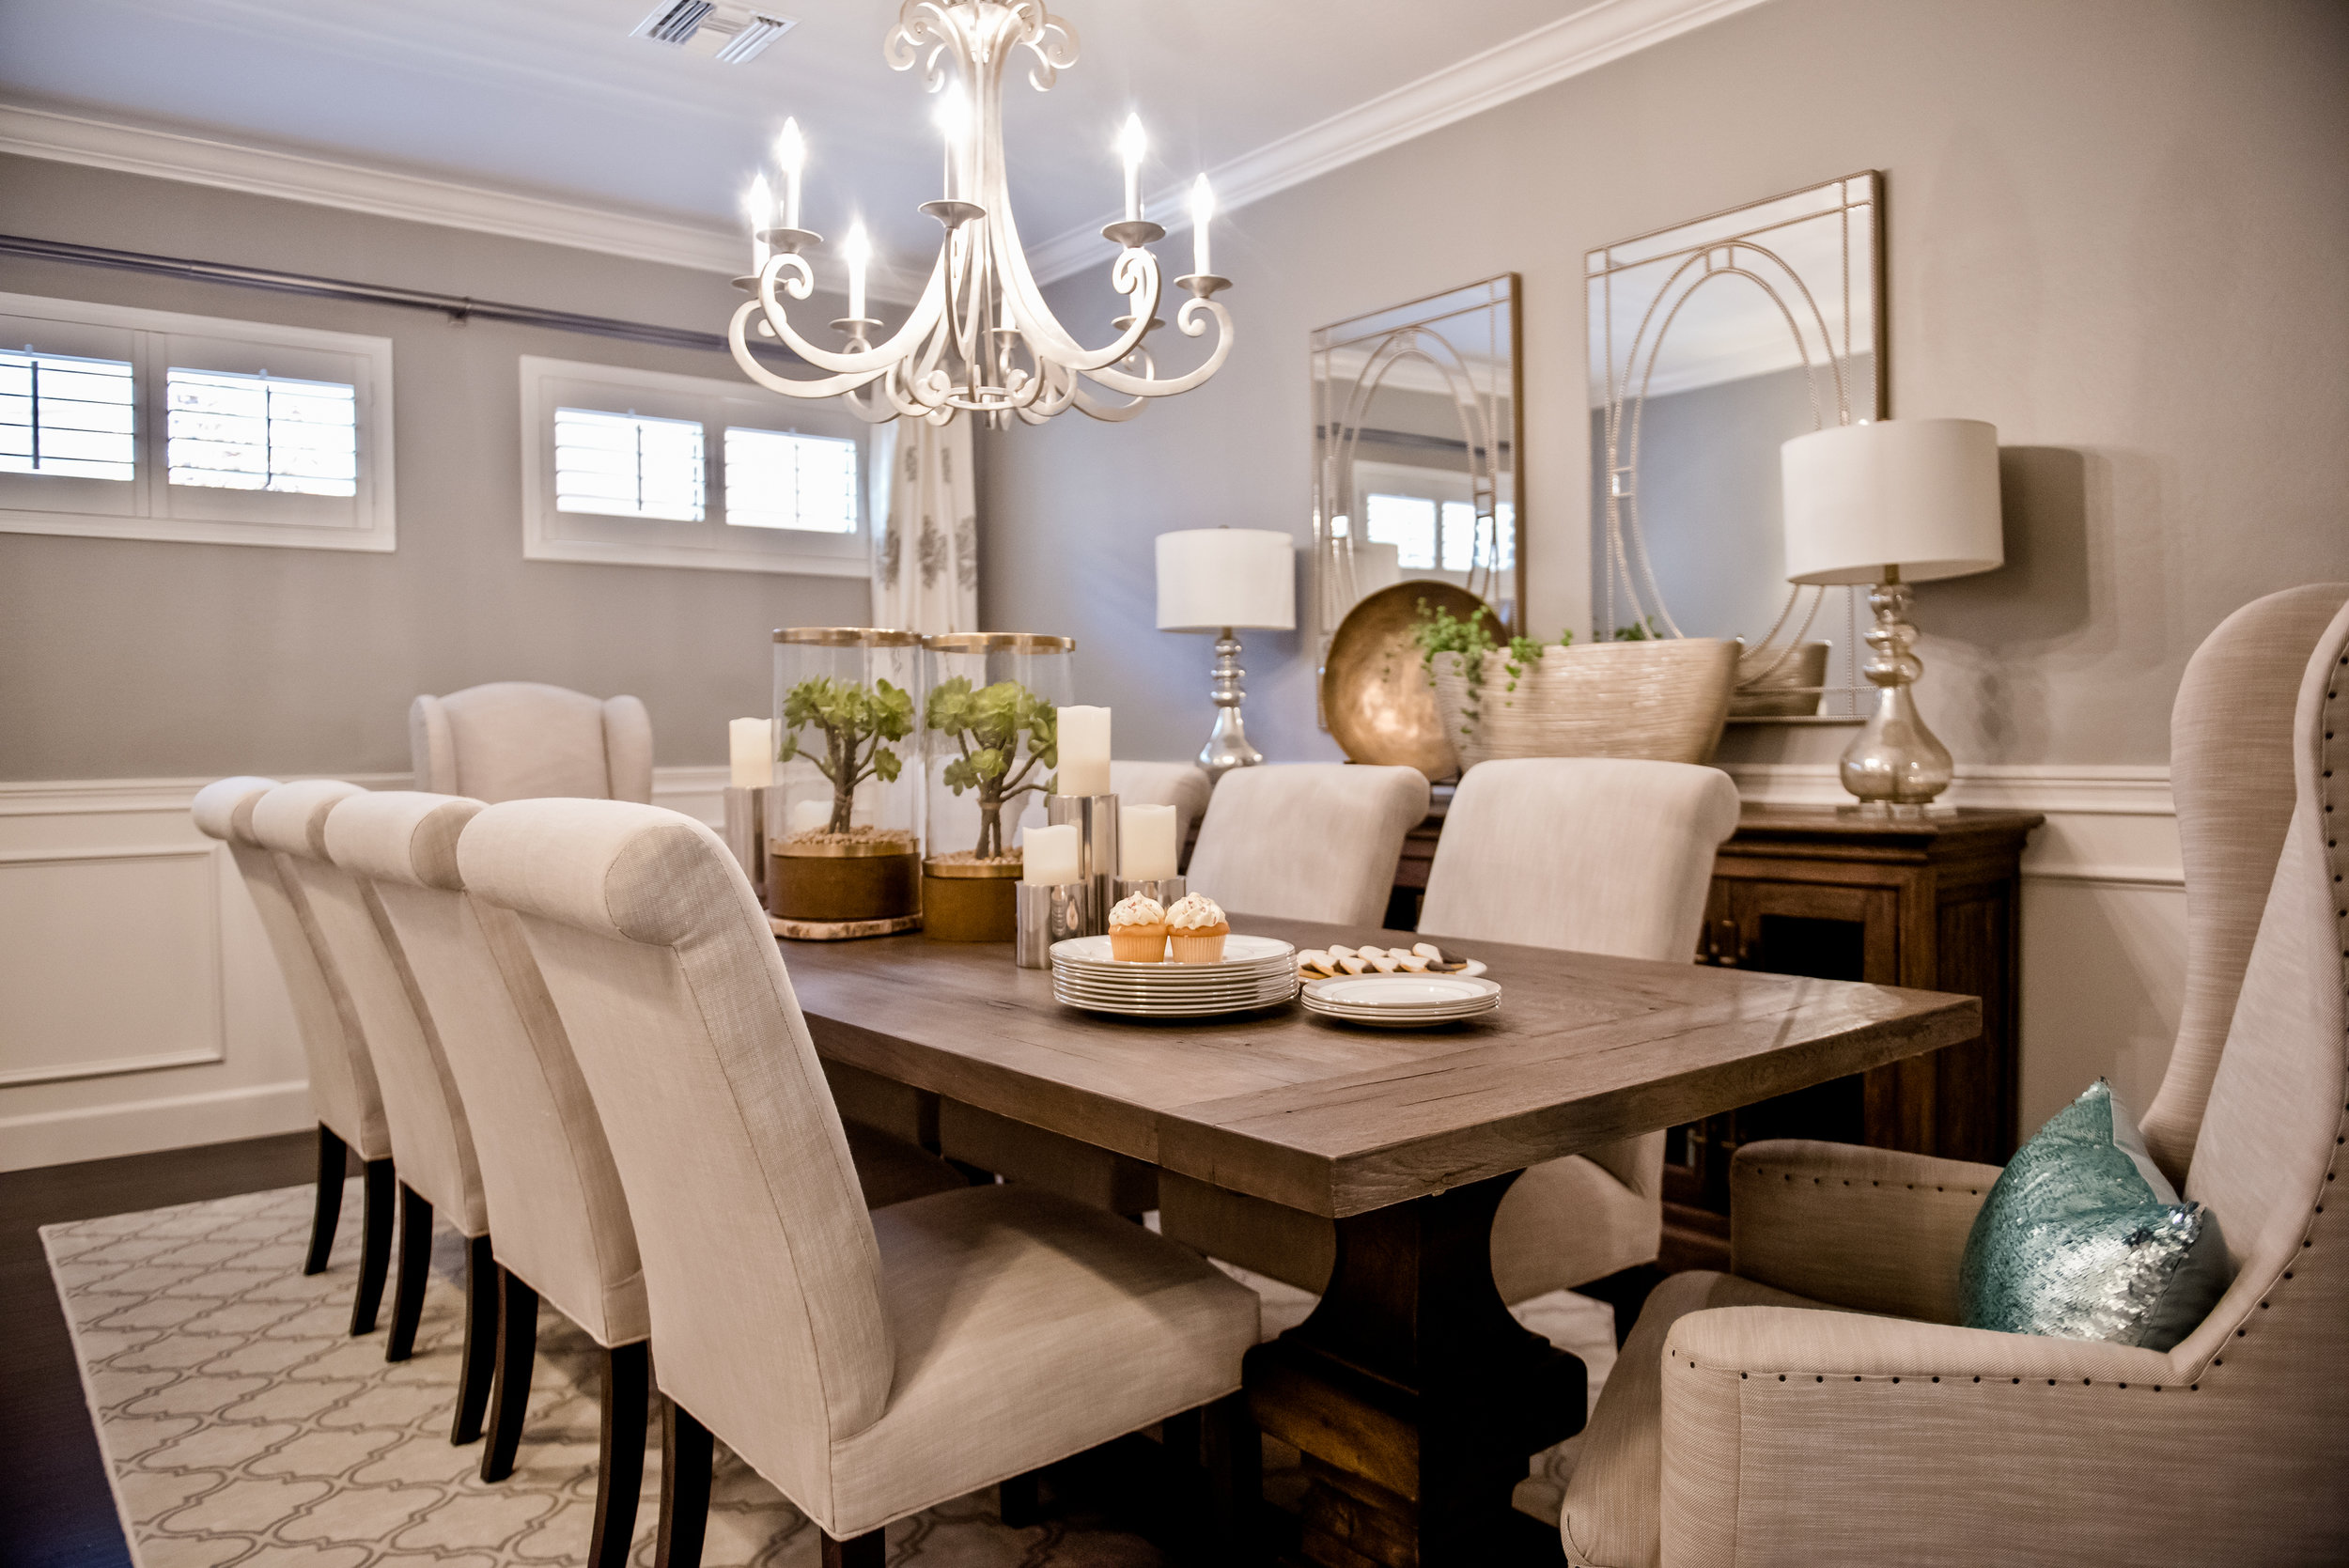 9- Dining+Transitional+Chandelier+RestorationHardware+Scottsdale.jpg